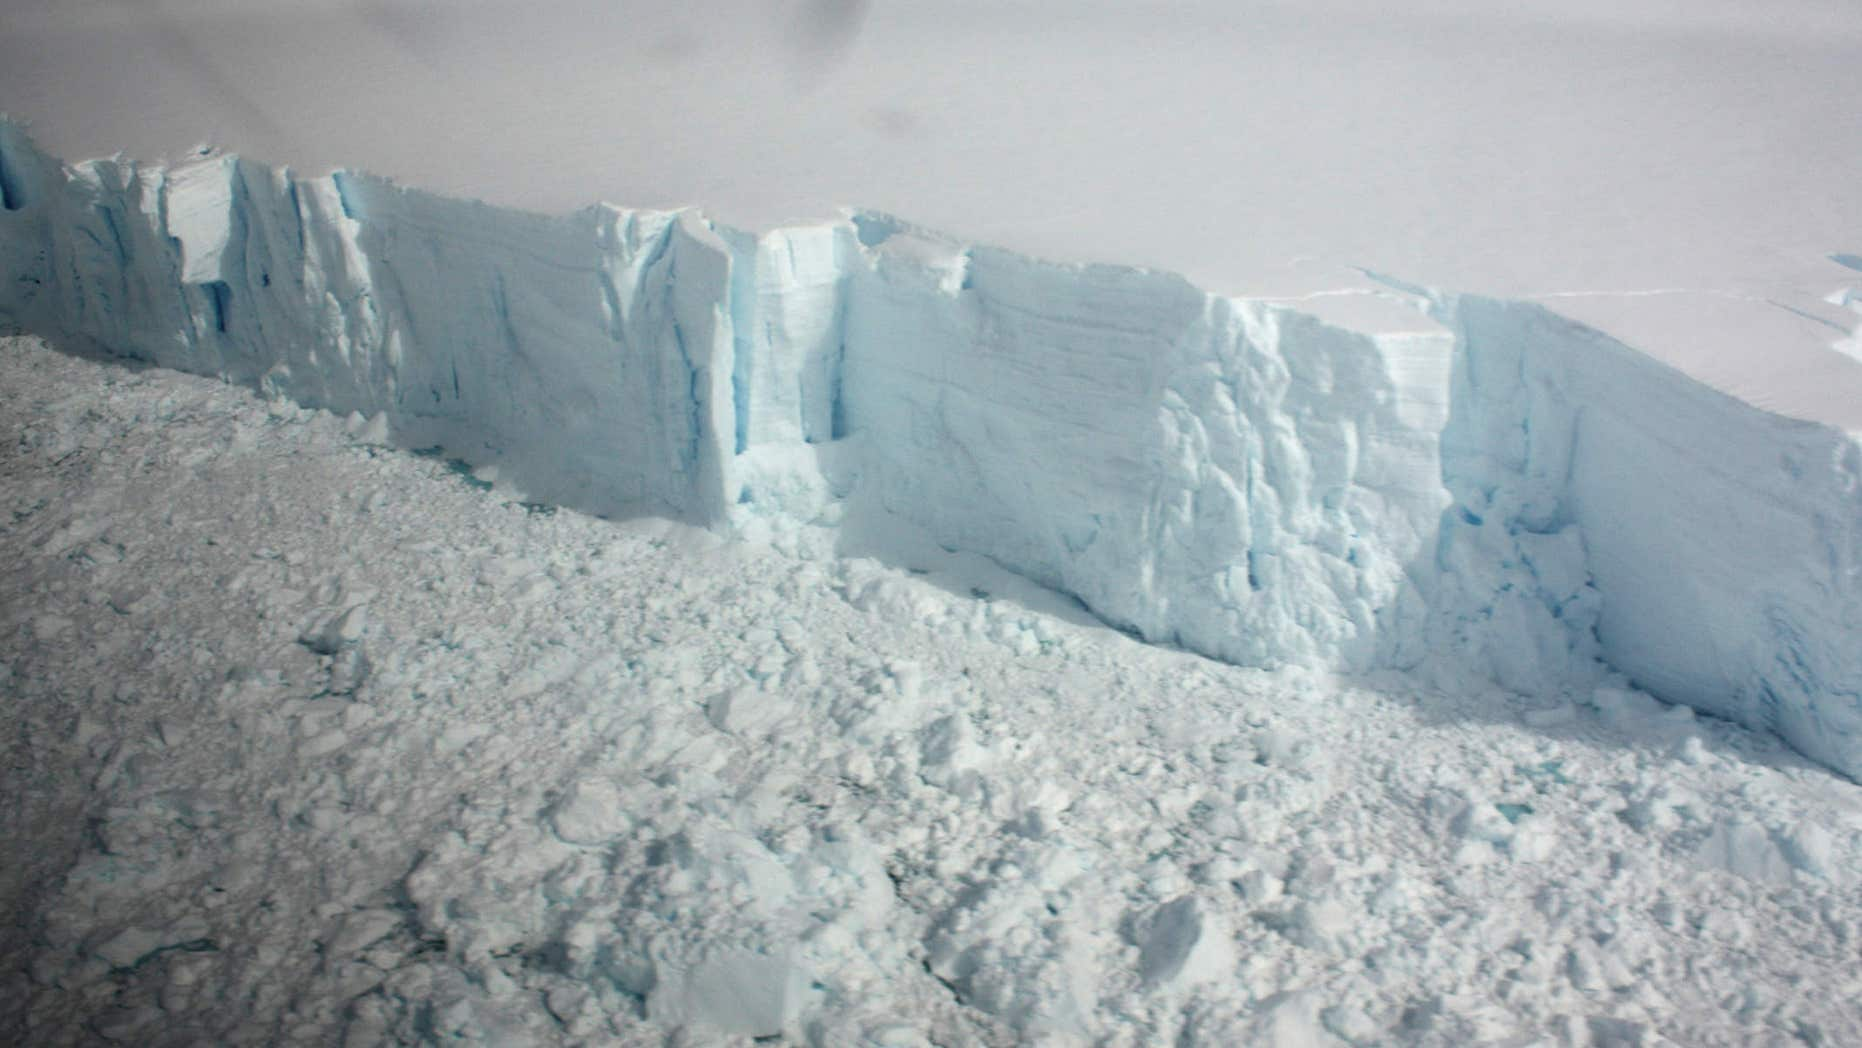 January 18, 2009: A 20 metre-high ice cliff forming the edge of the Wilkins Ice shelf on the Antarctic Peninsula is seen from a plane.